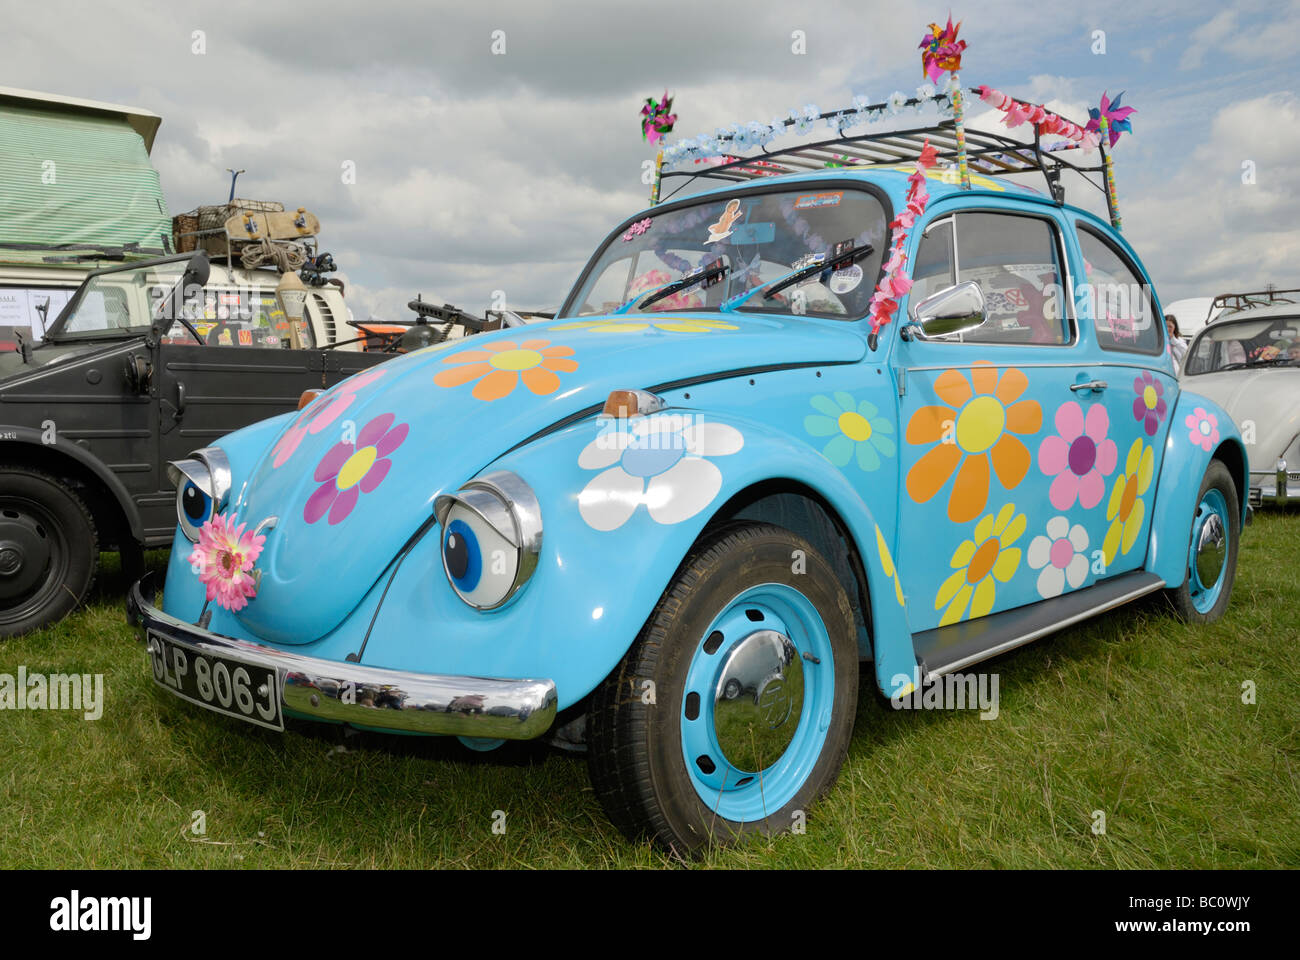 A VW Beetle decorated in a 'flower power' theme. Wymeswold, Leicestershire, England. - Stock Image